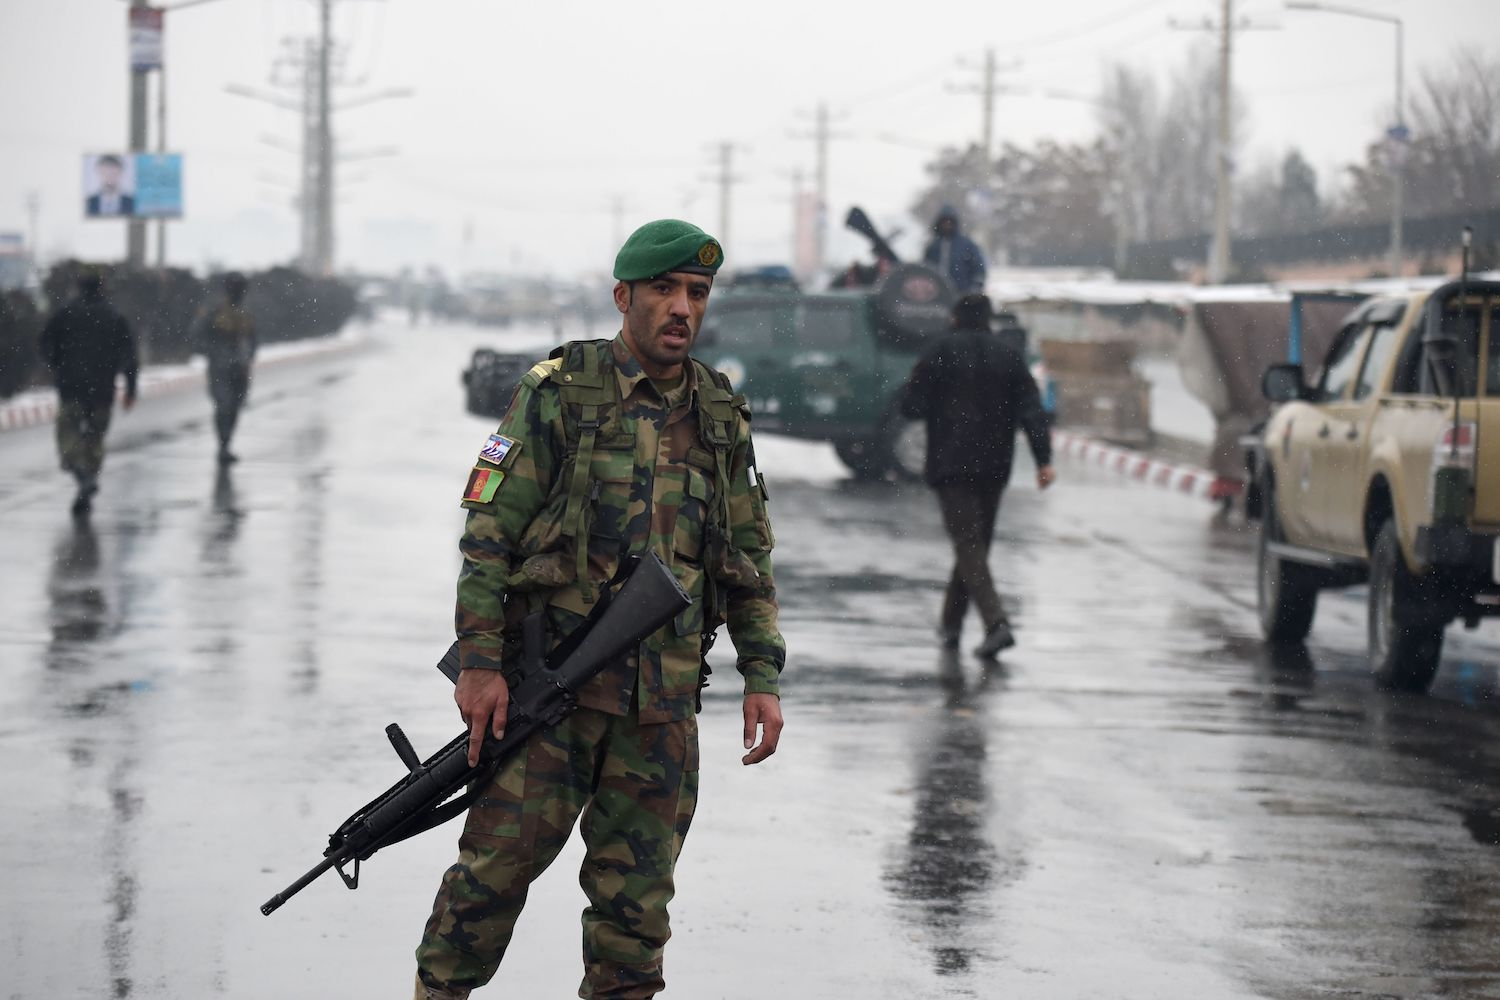 TOPSHOT - Afghan security personnel stand guard near the site of an attack near the Marshal Fahim Military Academy base in Kabul on January 29, 2018. Gunmen launched a pre-dawn attack on a military academy in Kabul on January 29, security officials and sources told AFP, in an ongoing assault that marks the latest violence to strike the Afghan capital.  / AFP PHOTO / WAKIL KOHSAR        (Photo credit should read WAKIL KOHSAR/AFP/Getty Images)